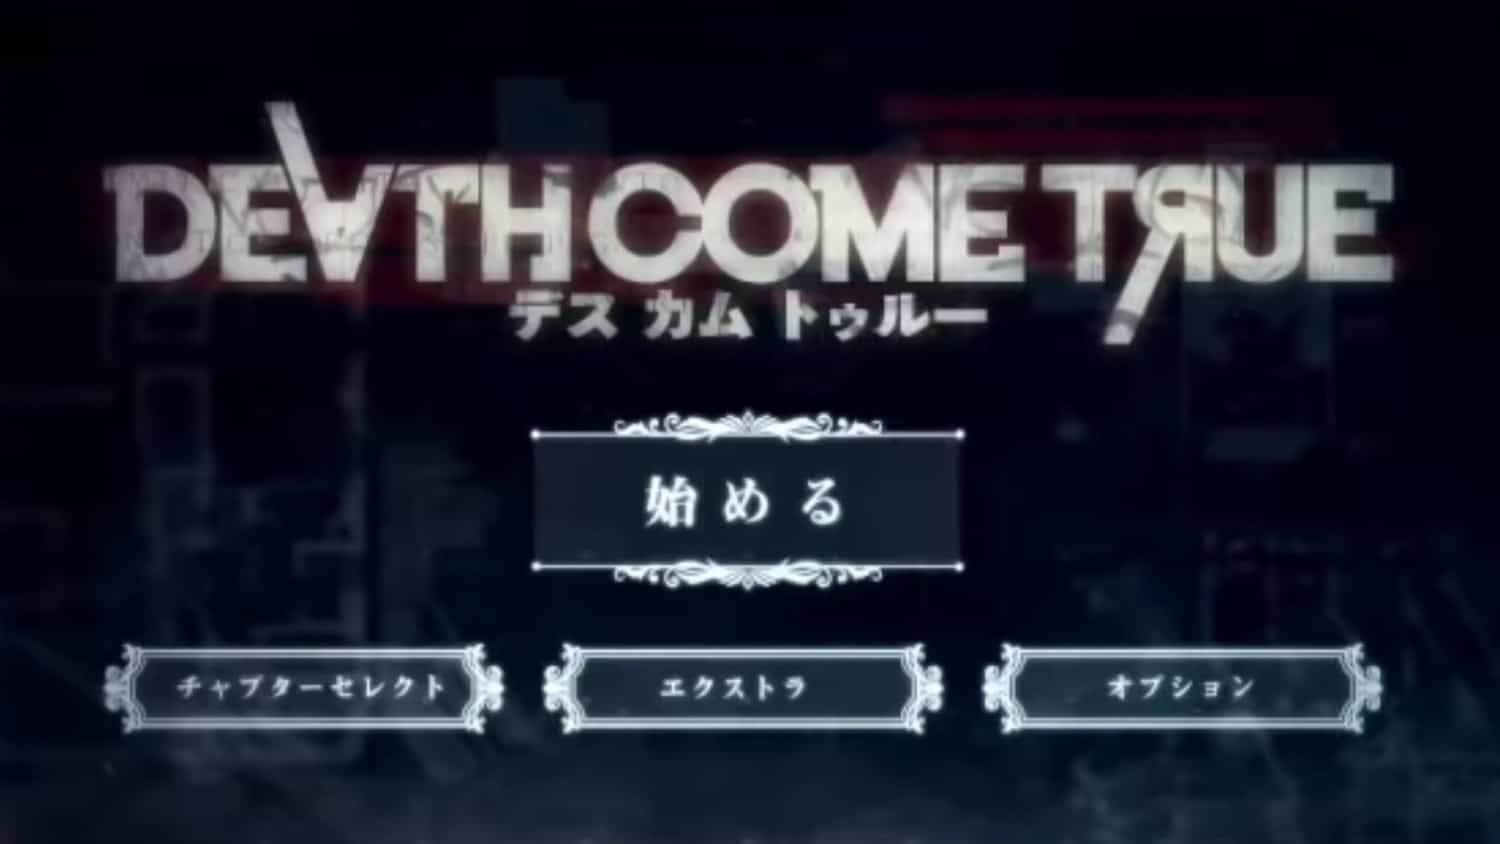 Death Come True – Launches June 2020 In Japan, 3rd Trailer